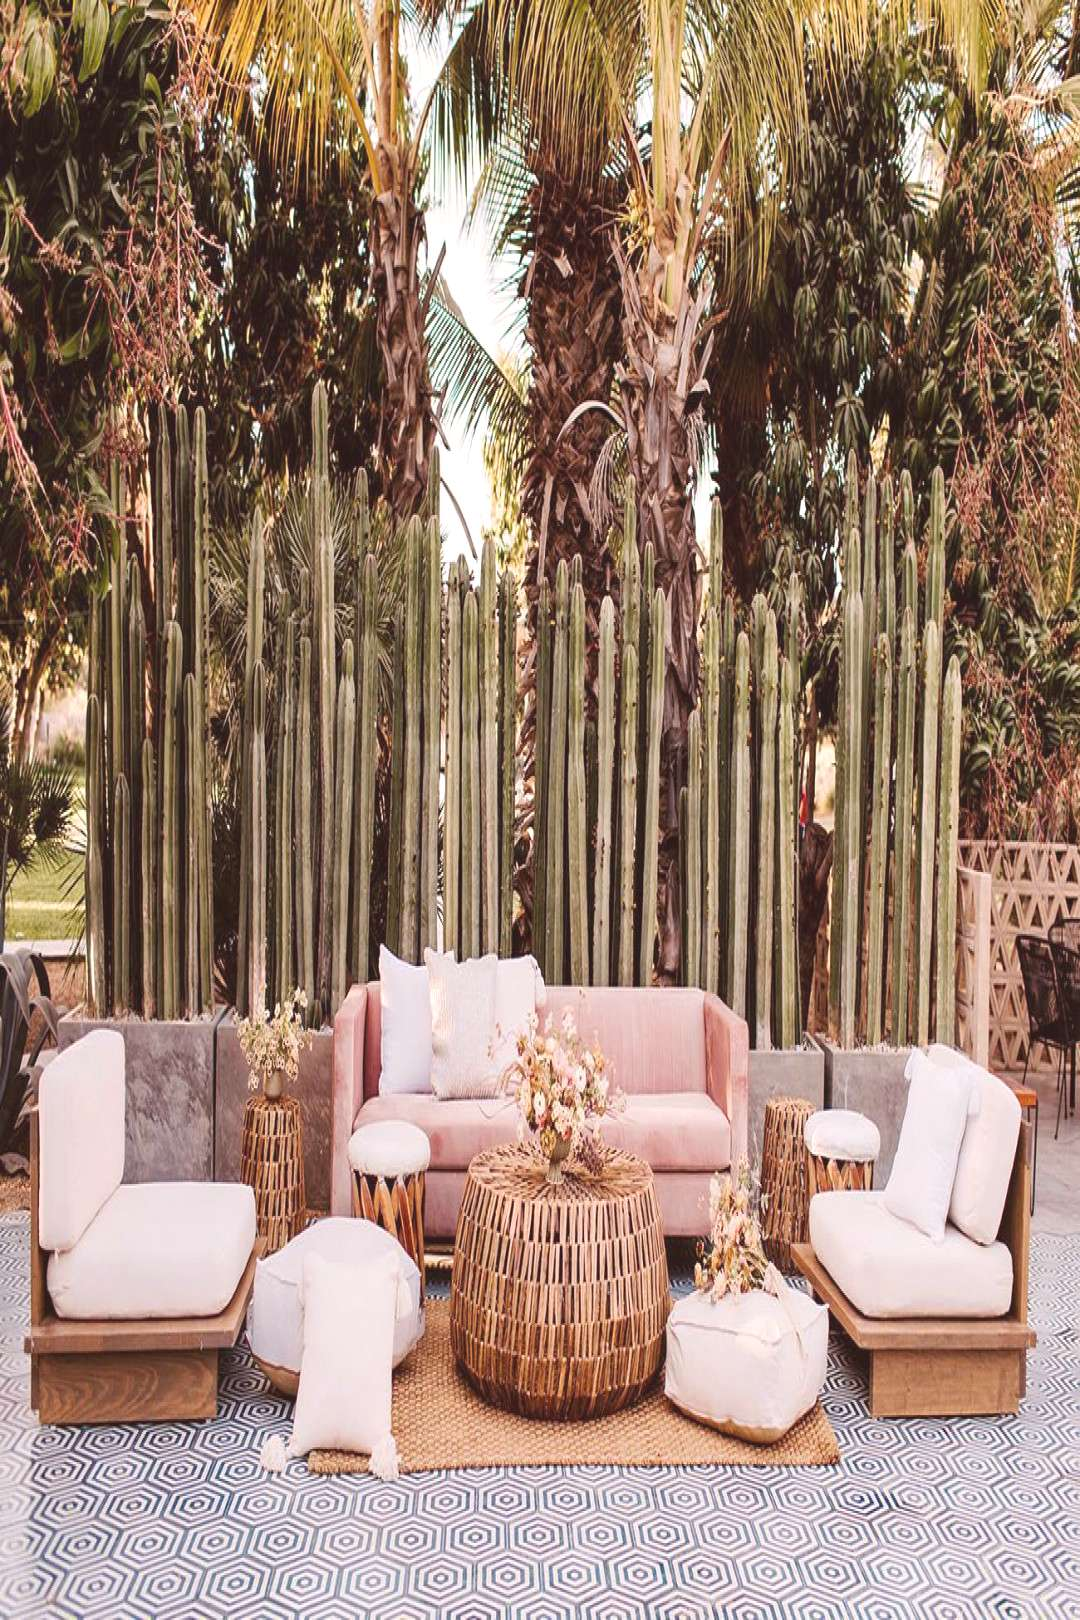 Tropical Meets Bohemian Wedding Inspiration at Acre Baja in Cabo | Green Wedding Shoes - Tropical